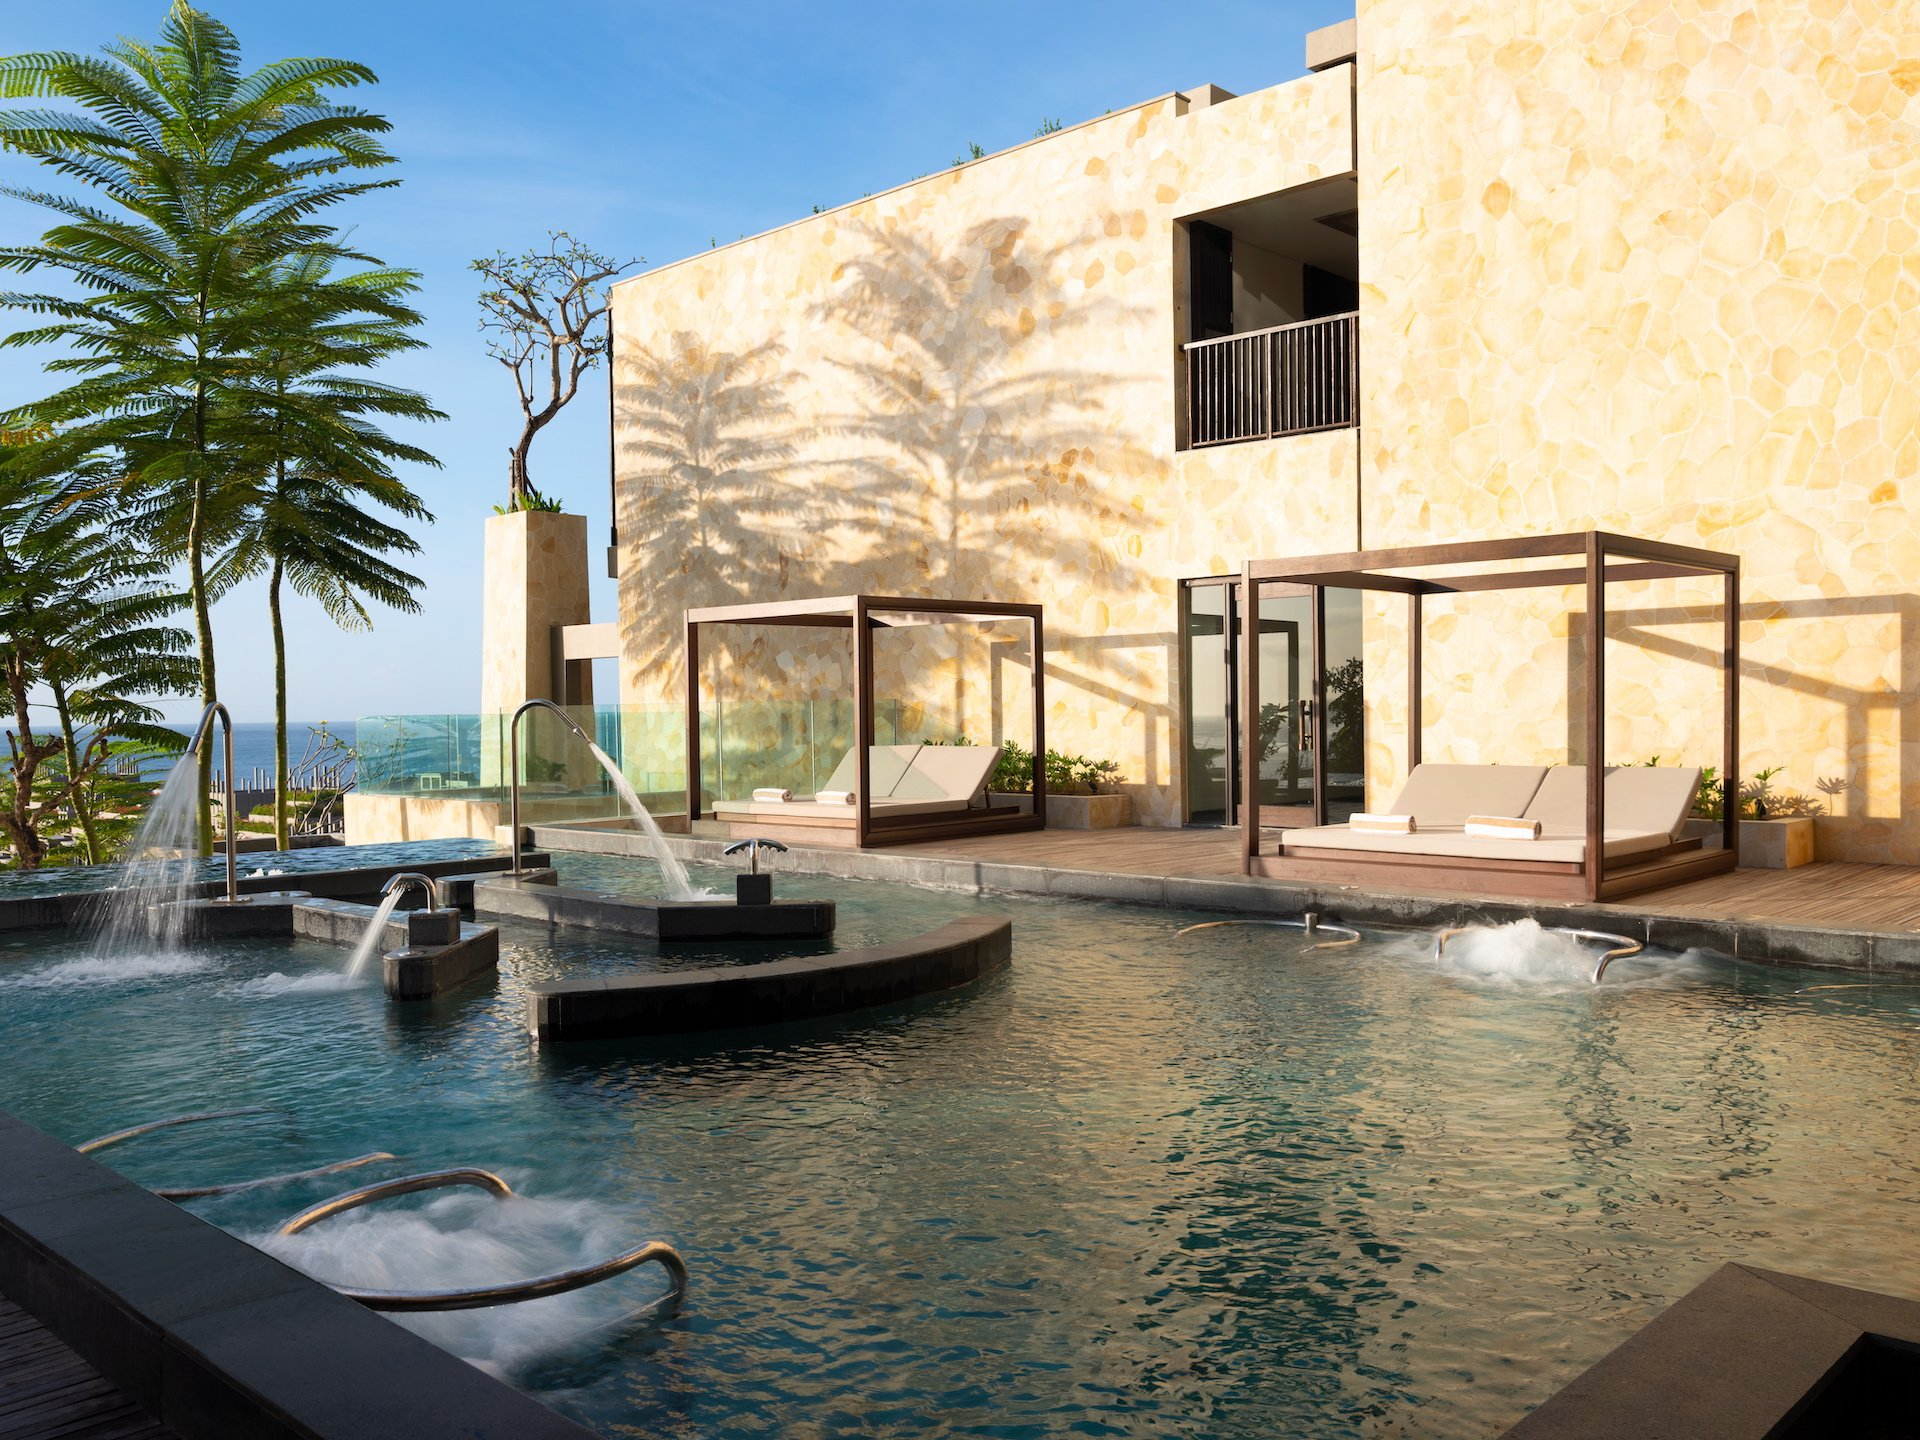 Grand Designs New Villa Collection Marks The Completion Of The Apurva Kempinski Bali Babble Up